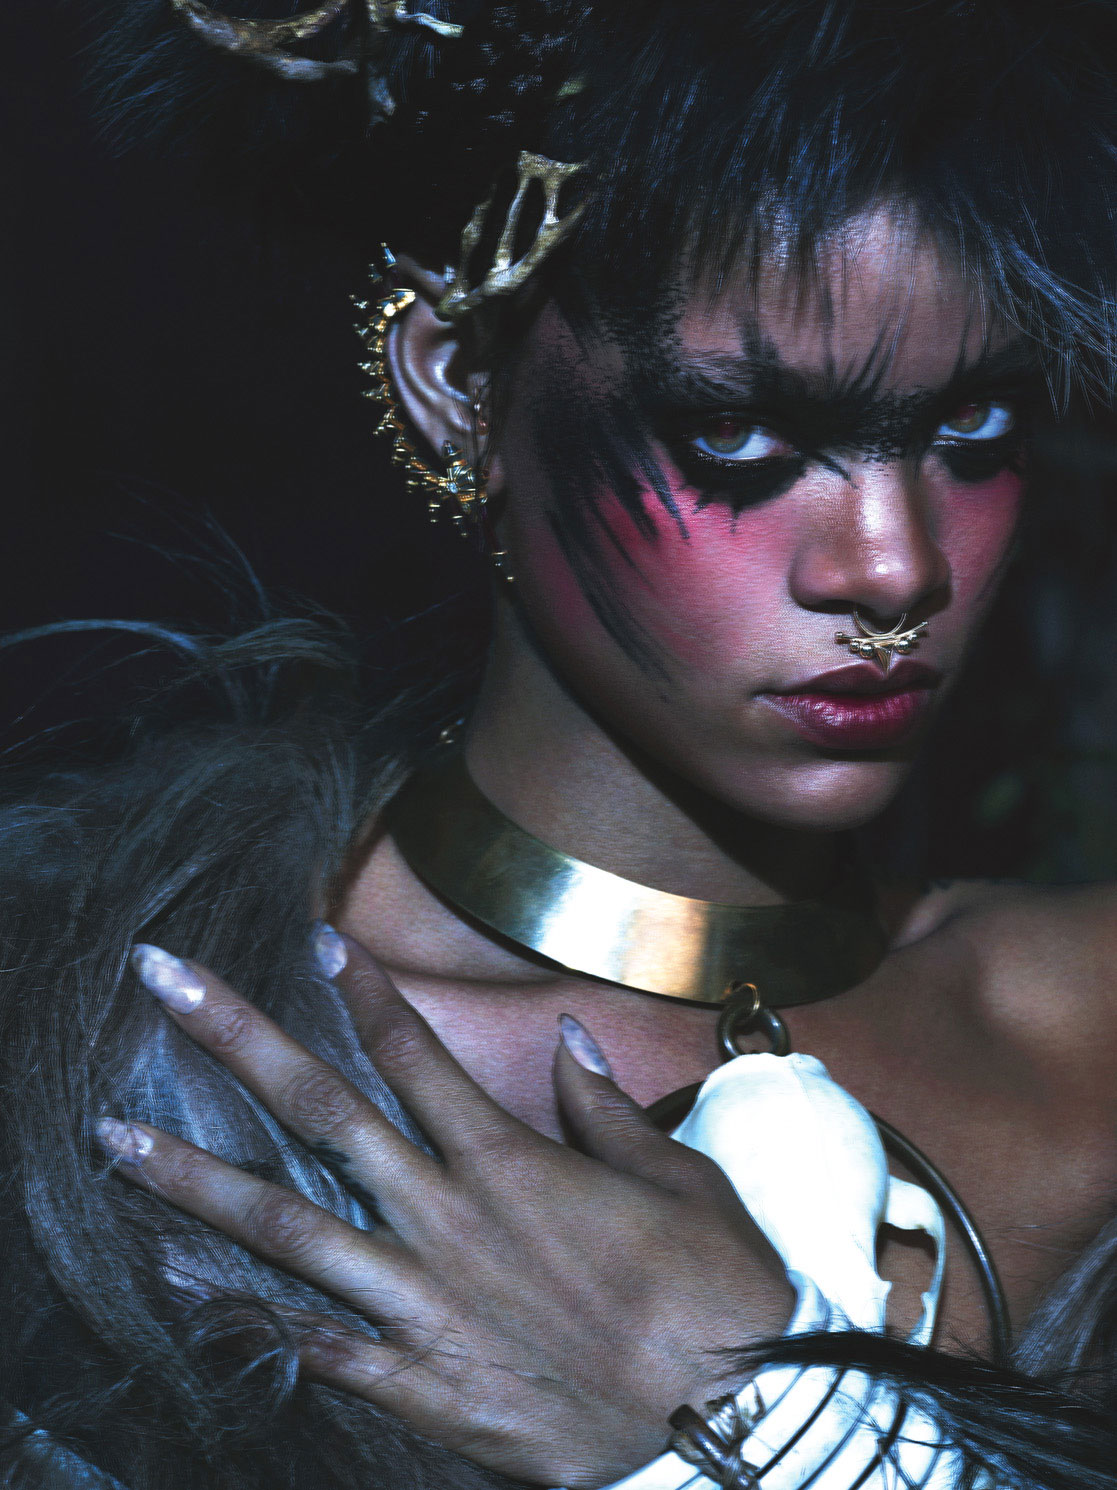 rihanna-by-mert-alas-marcus-piggott-for-w-magazine-september-2014.jpg